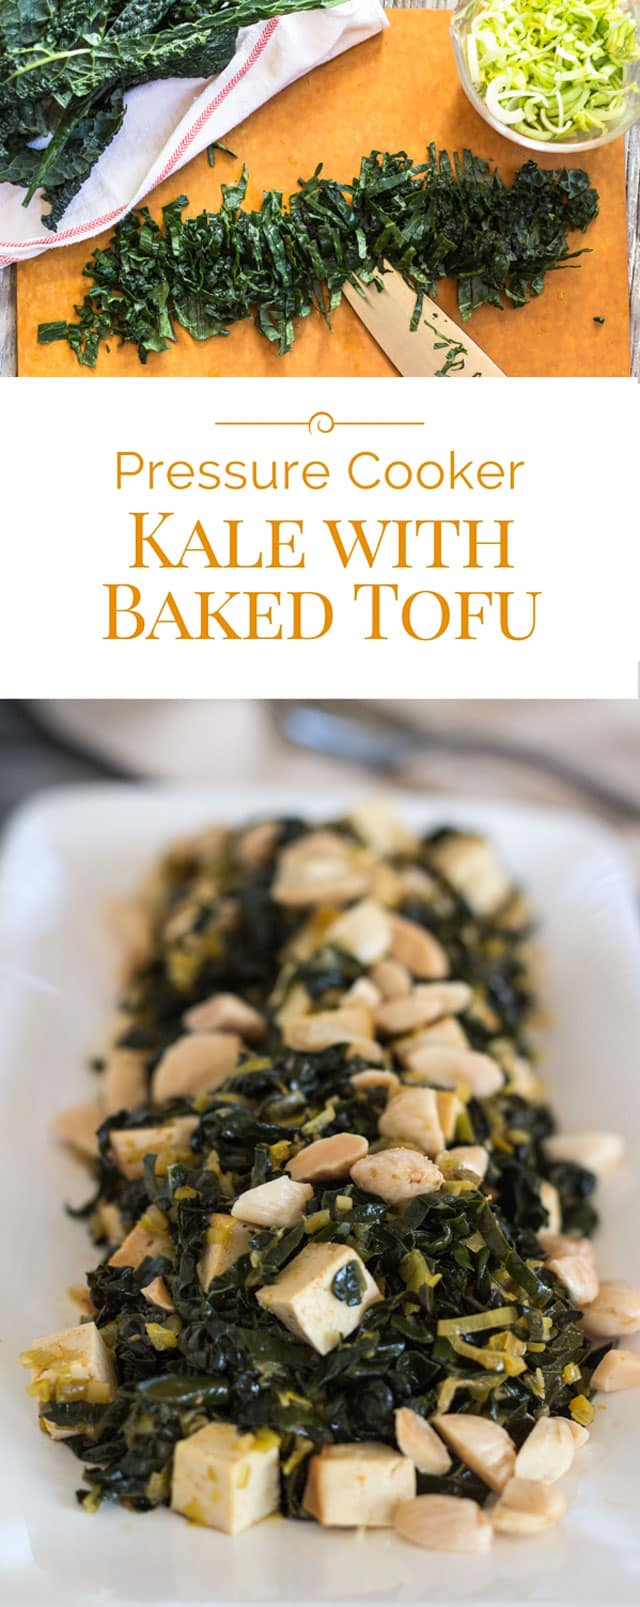 Kale with baked tofu and Spanish almonds is a healthy vegetarian pressure cooker recipe, perfect for a meatless main meal or side dish. This Instant Pot kale recipe will give you a daily dose of healthy greens. #instantpot #pressurecooker #healthyrecipe #vegetarian #tofu via @PressureCook2da